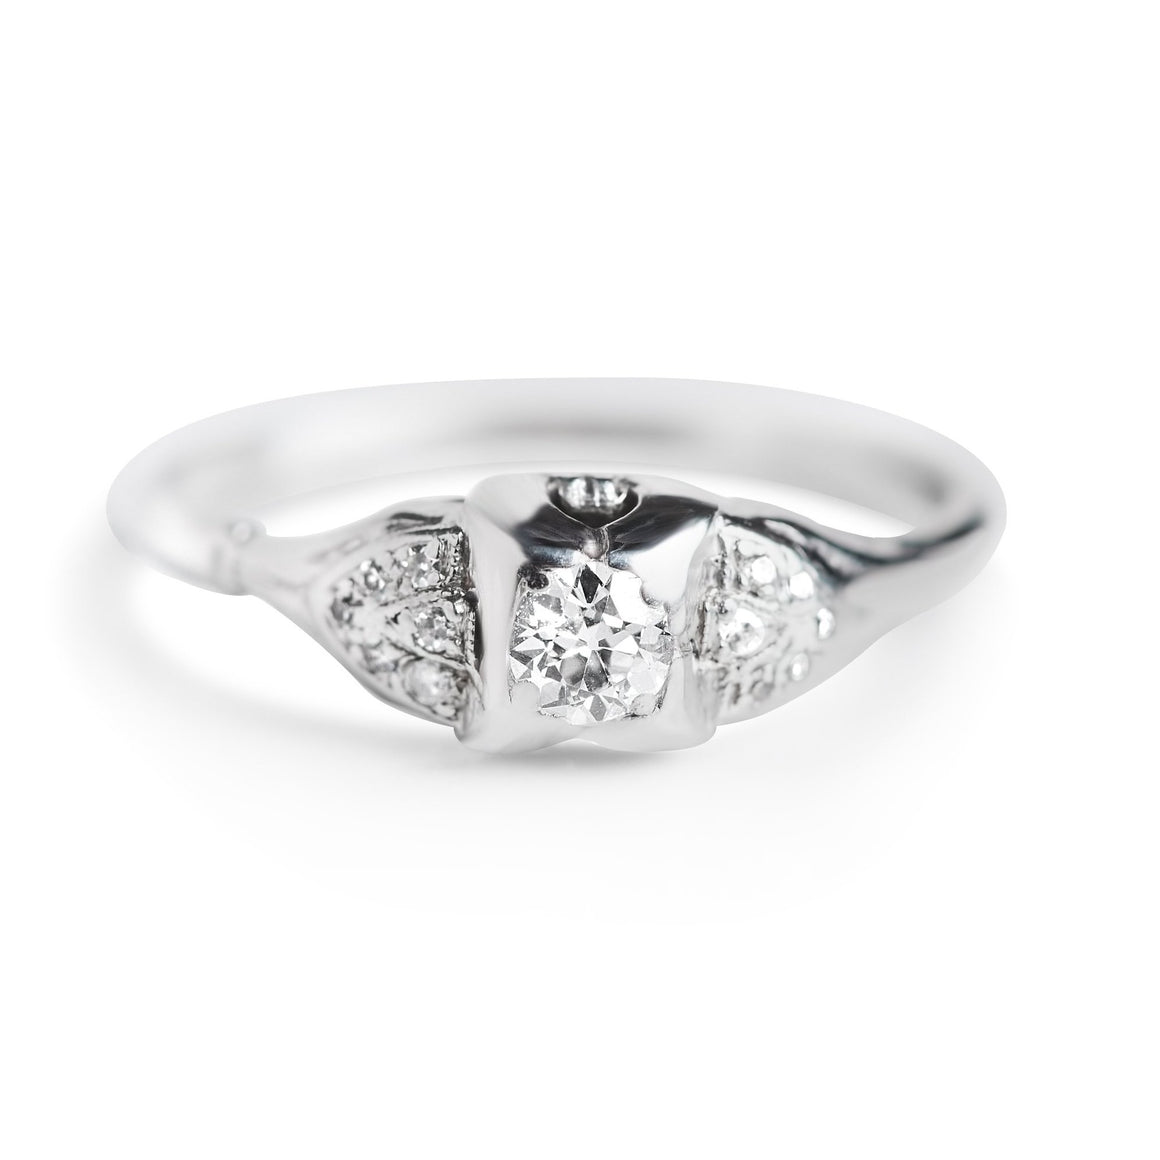 Platinum three stone estate engagement ring with old european cut diamonds